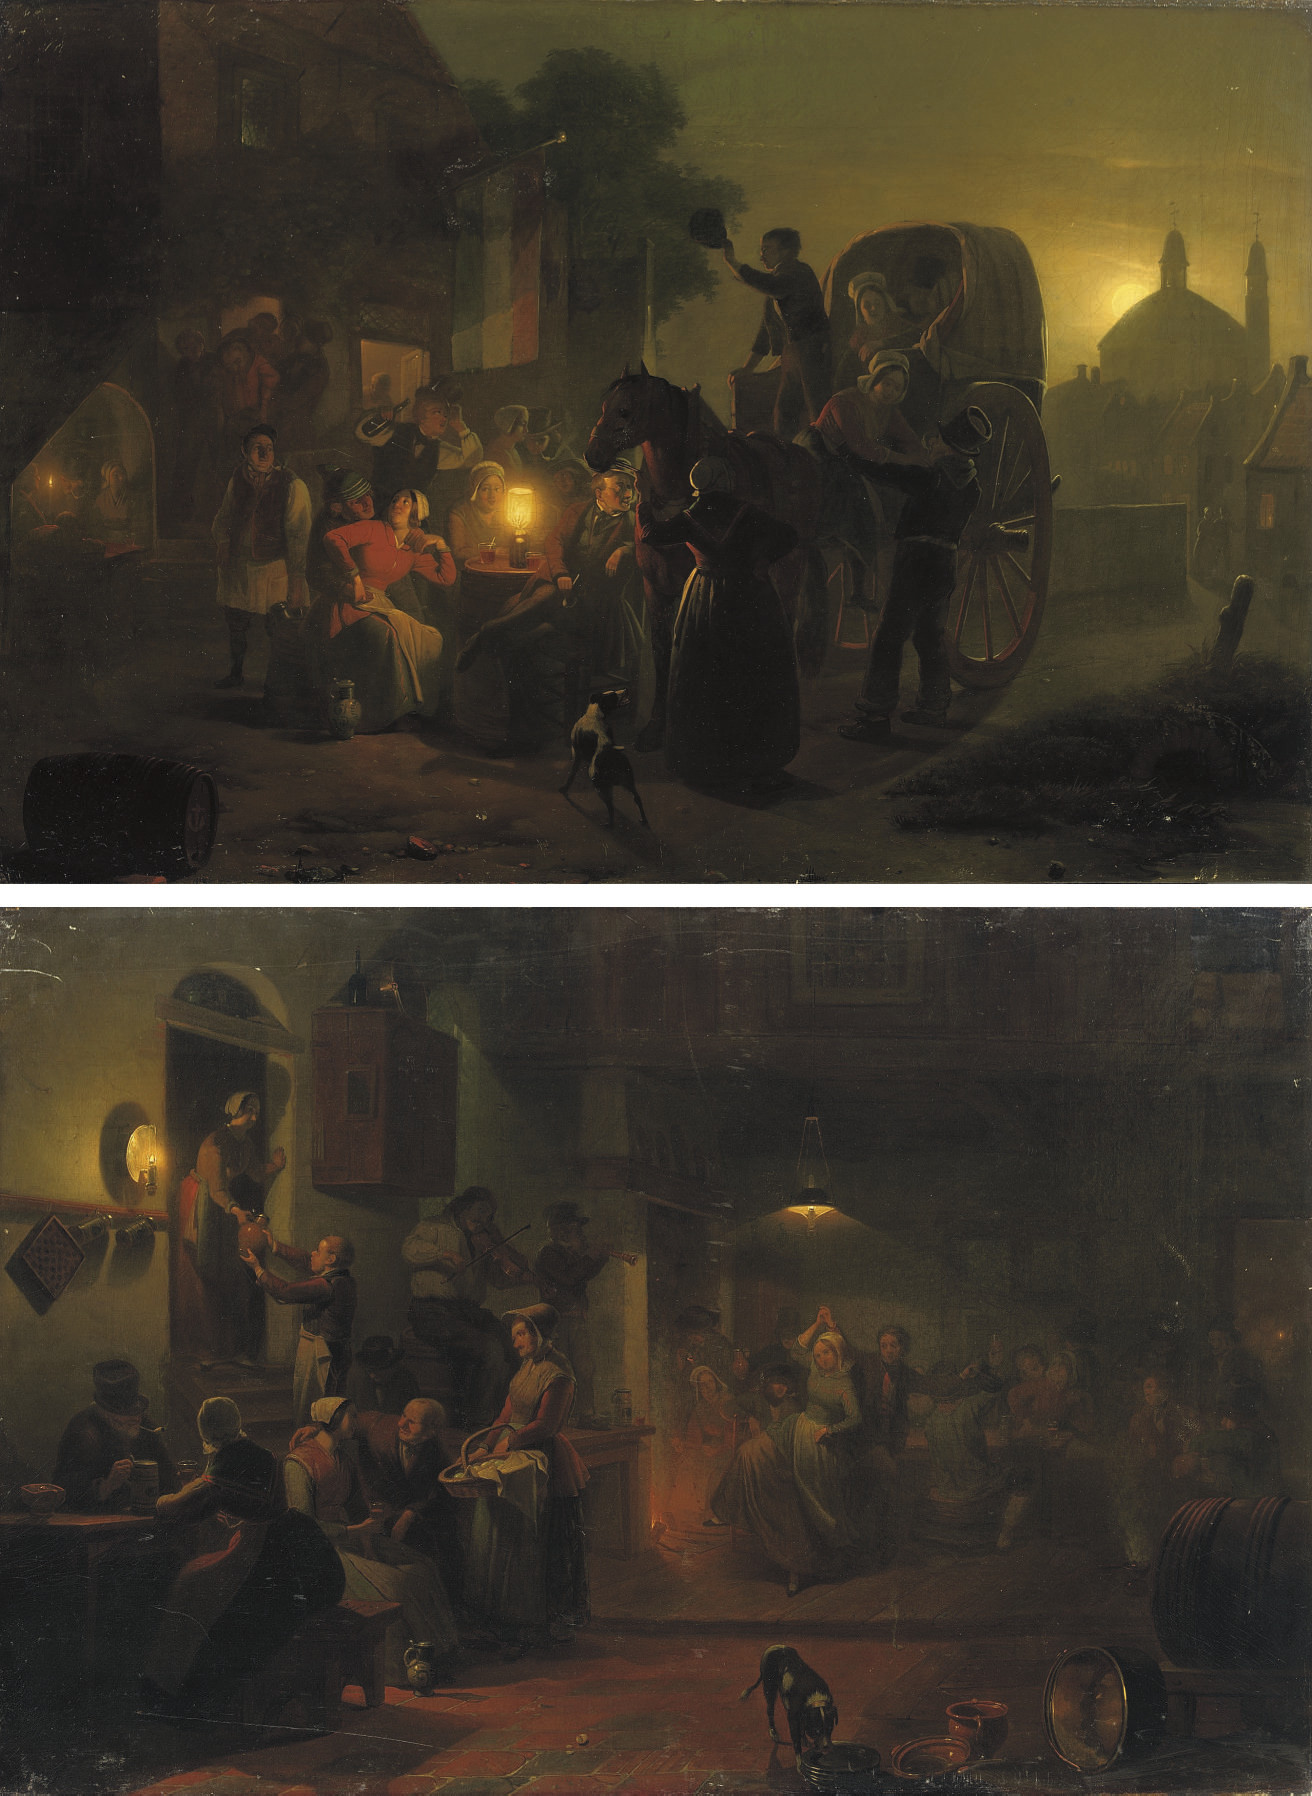 Dancing in the tavern; and Outside the tavern